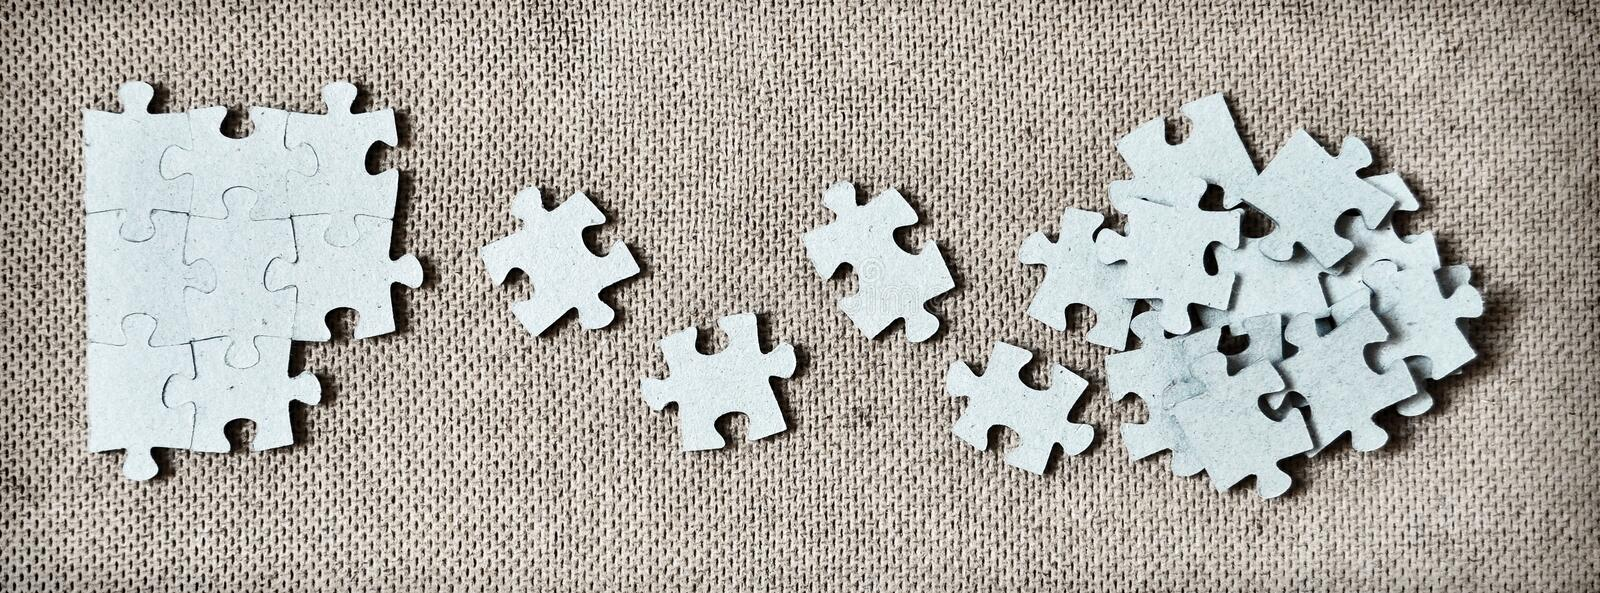 Puzzle game. Playing puzzle game abstract concept royalty free stock image